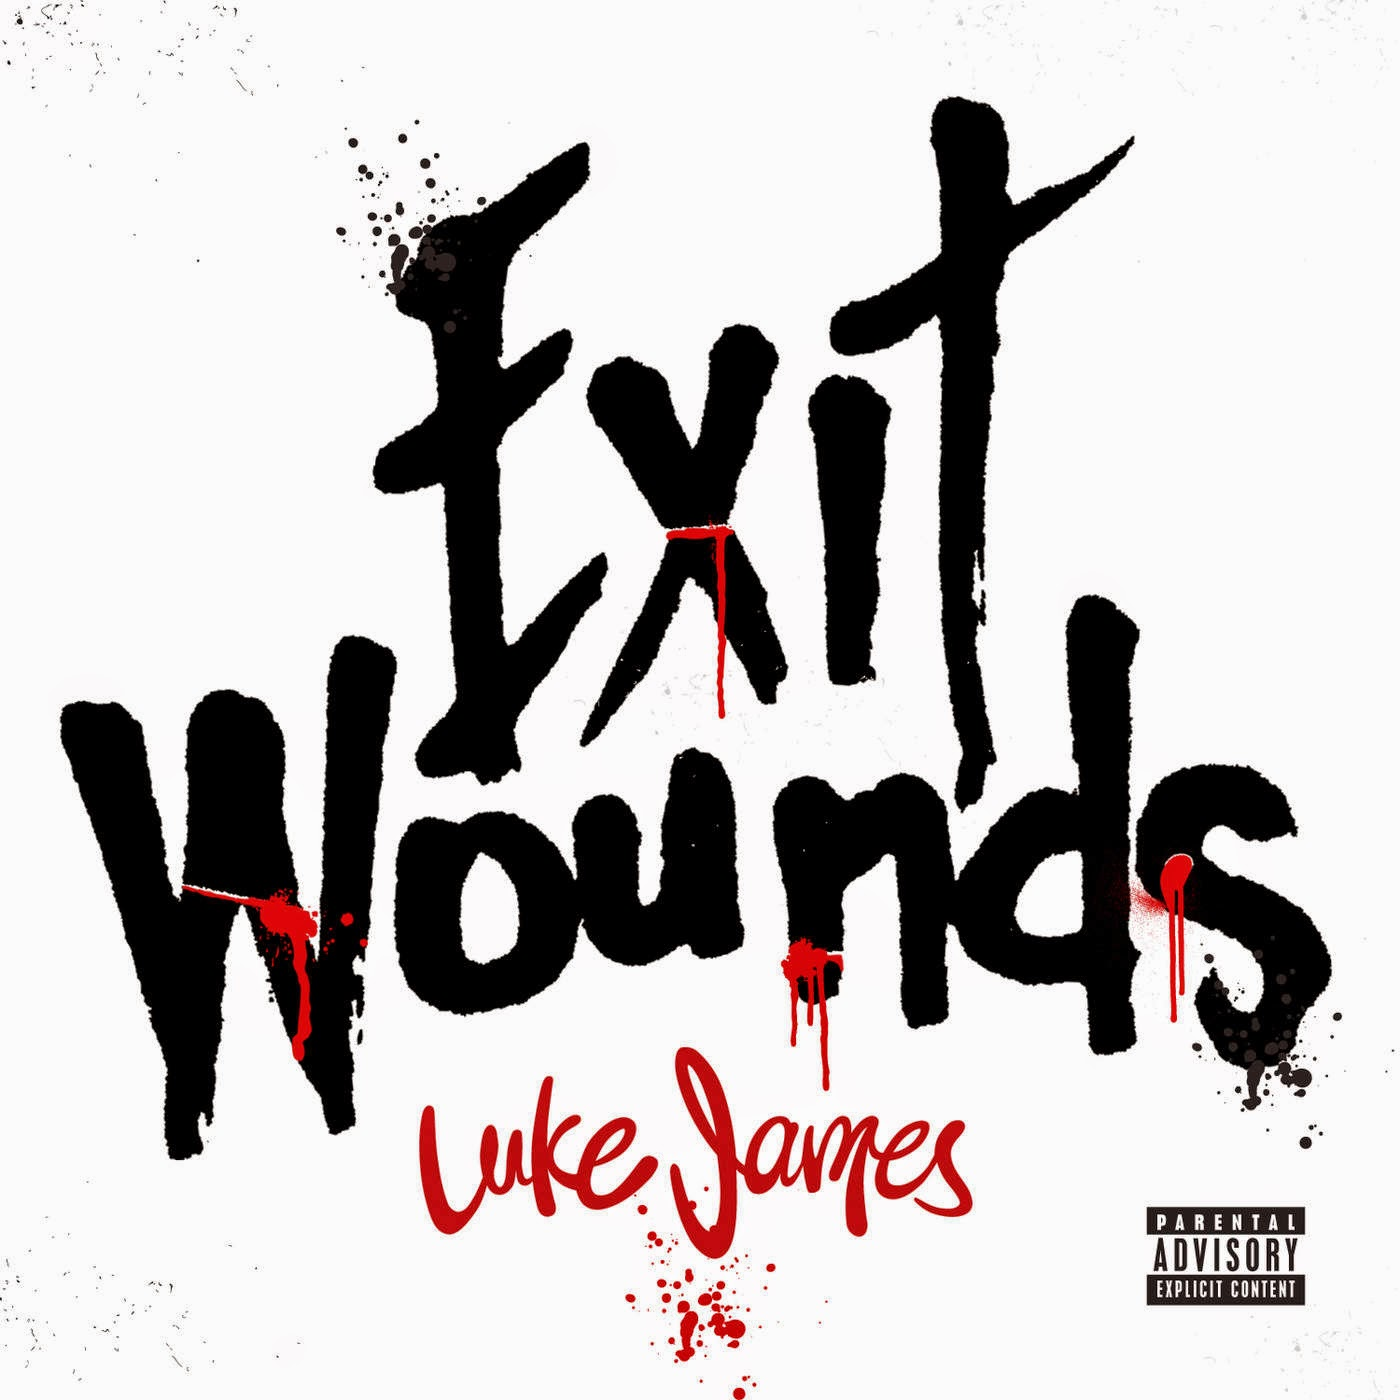 Luke James - Exit Wounds - Single Cover